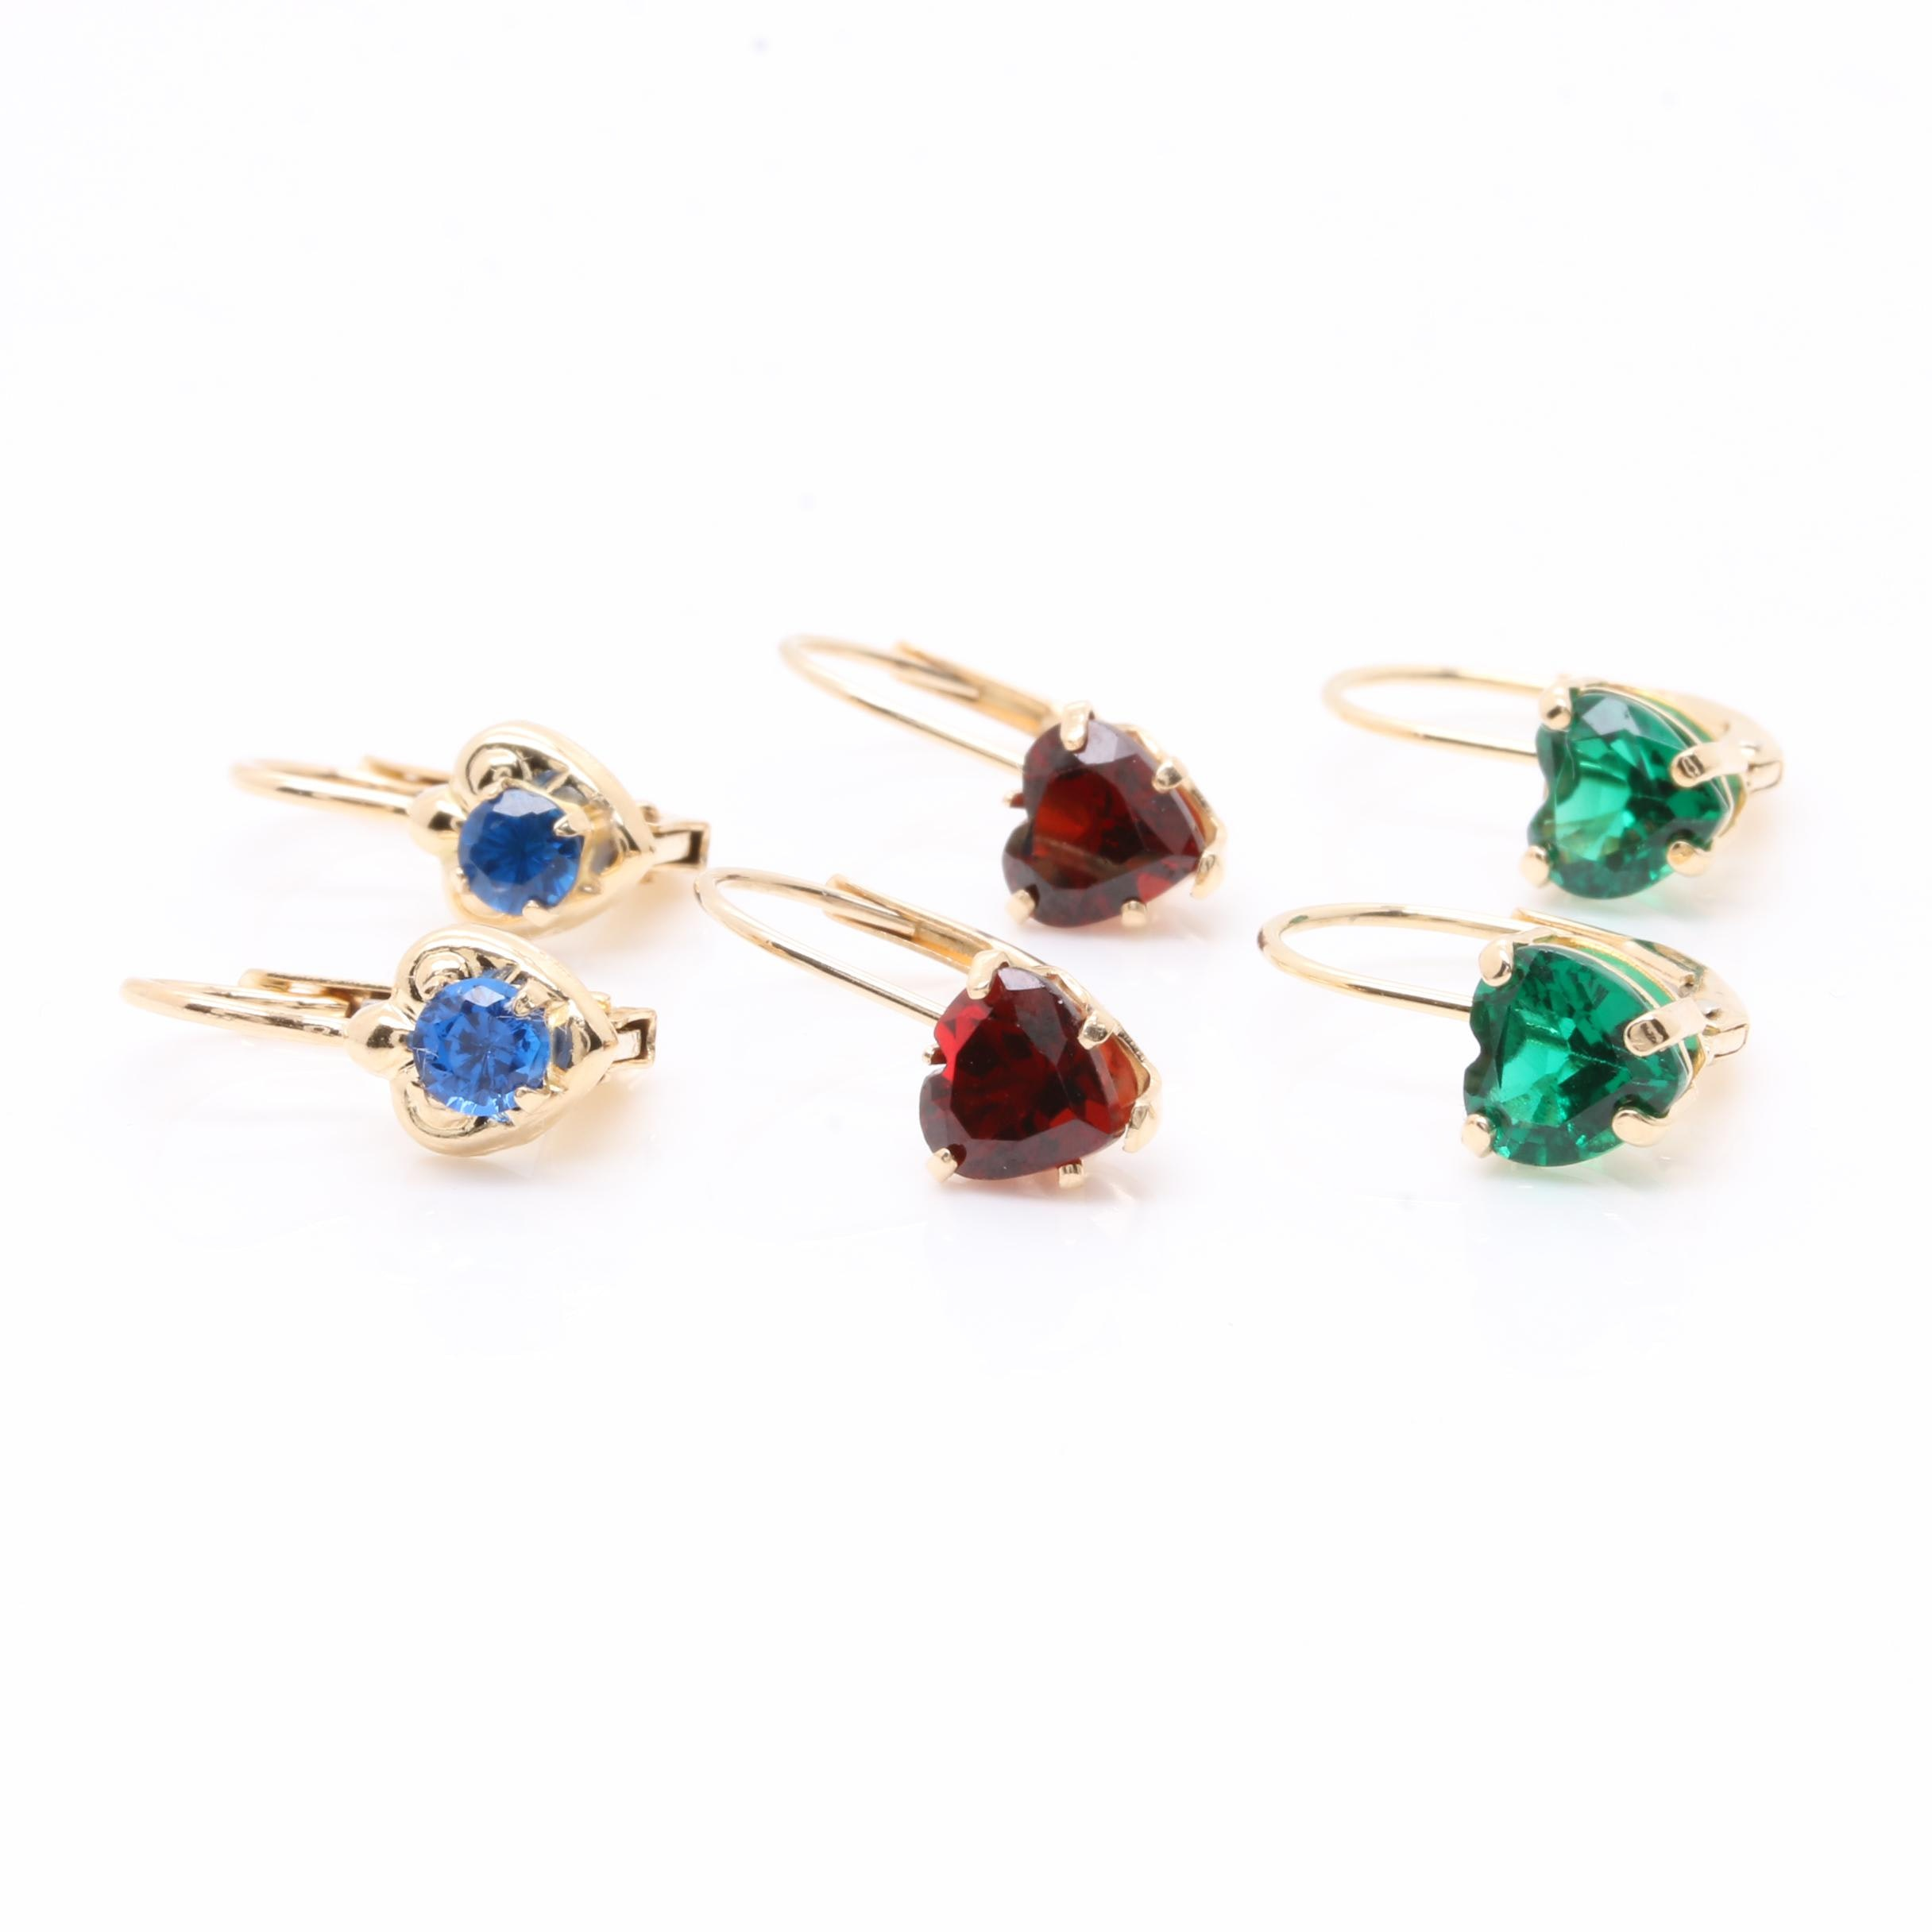 14K Yellow Gold Garnet, Synthetic Spinel and Synthetic Emerald Earrings